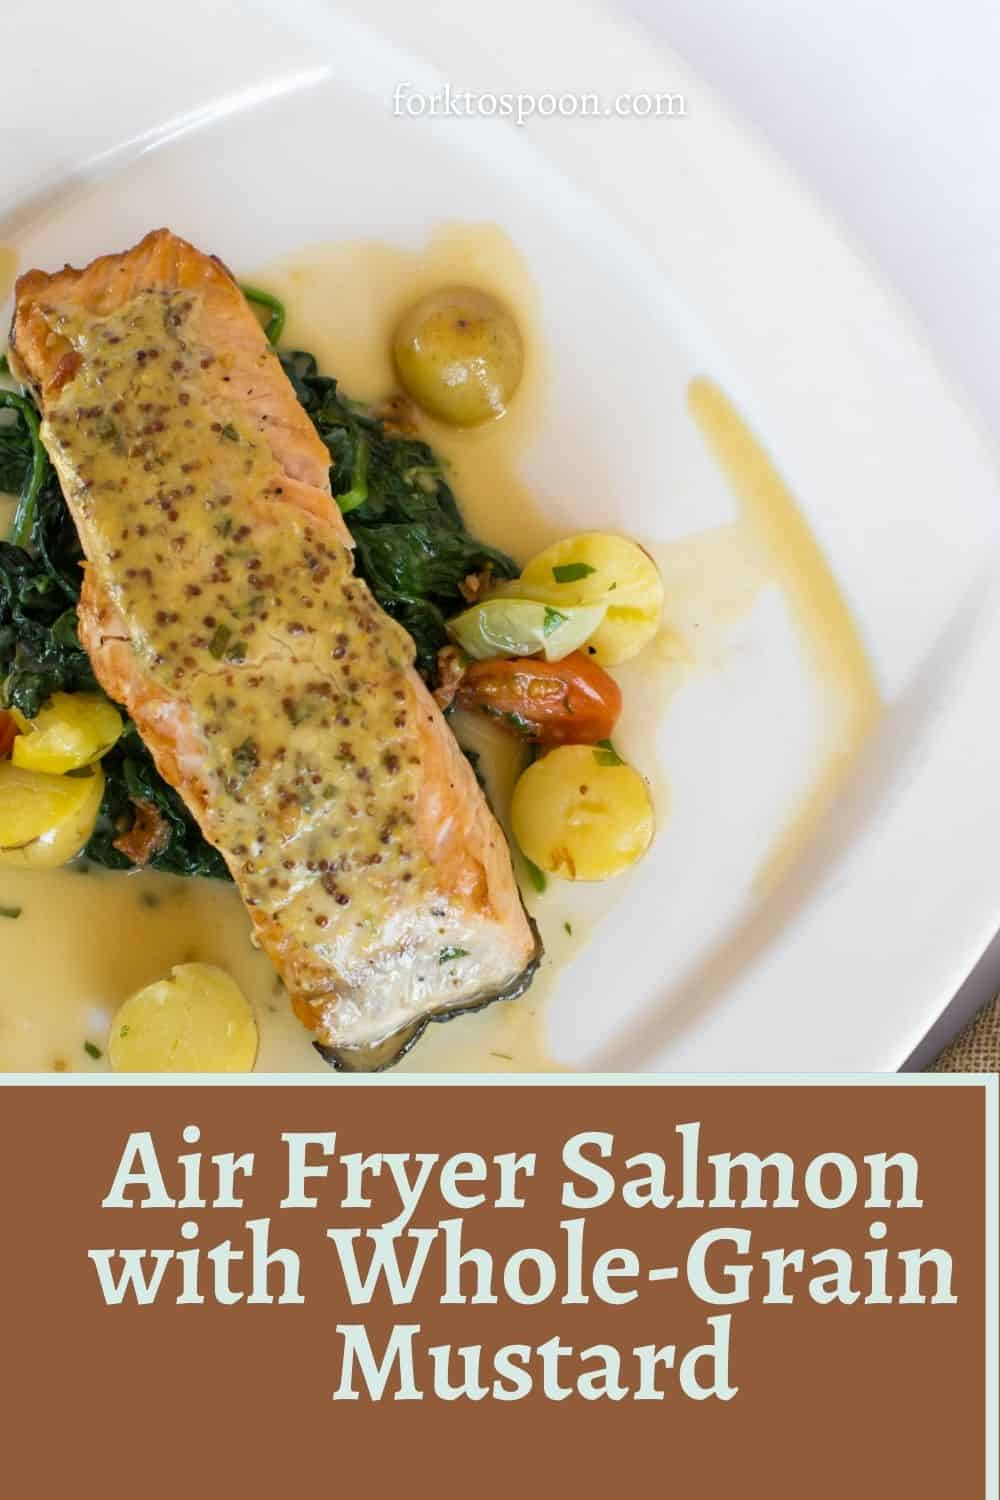 Air Fryer Salmon with Whole-Grain Mustard